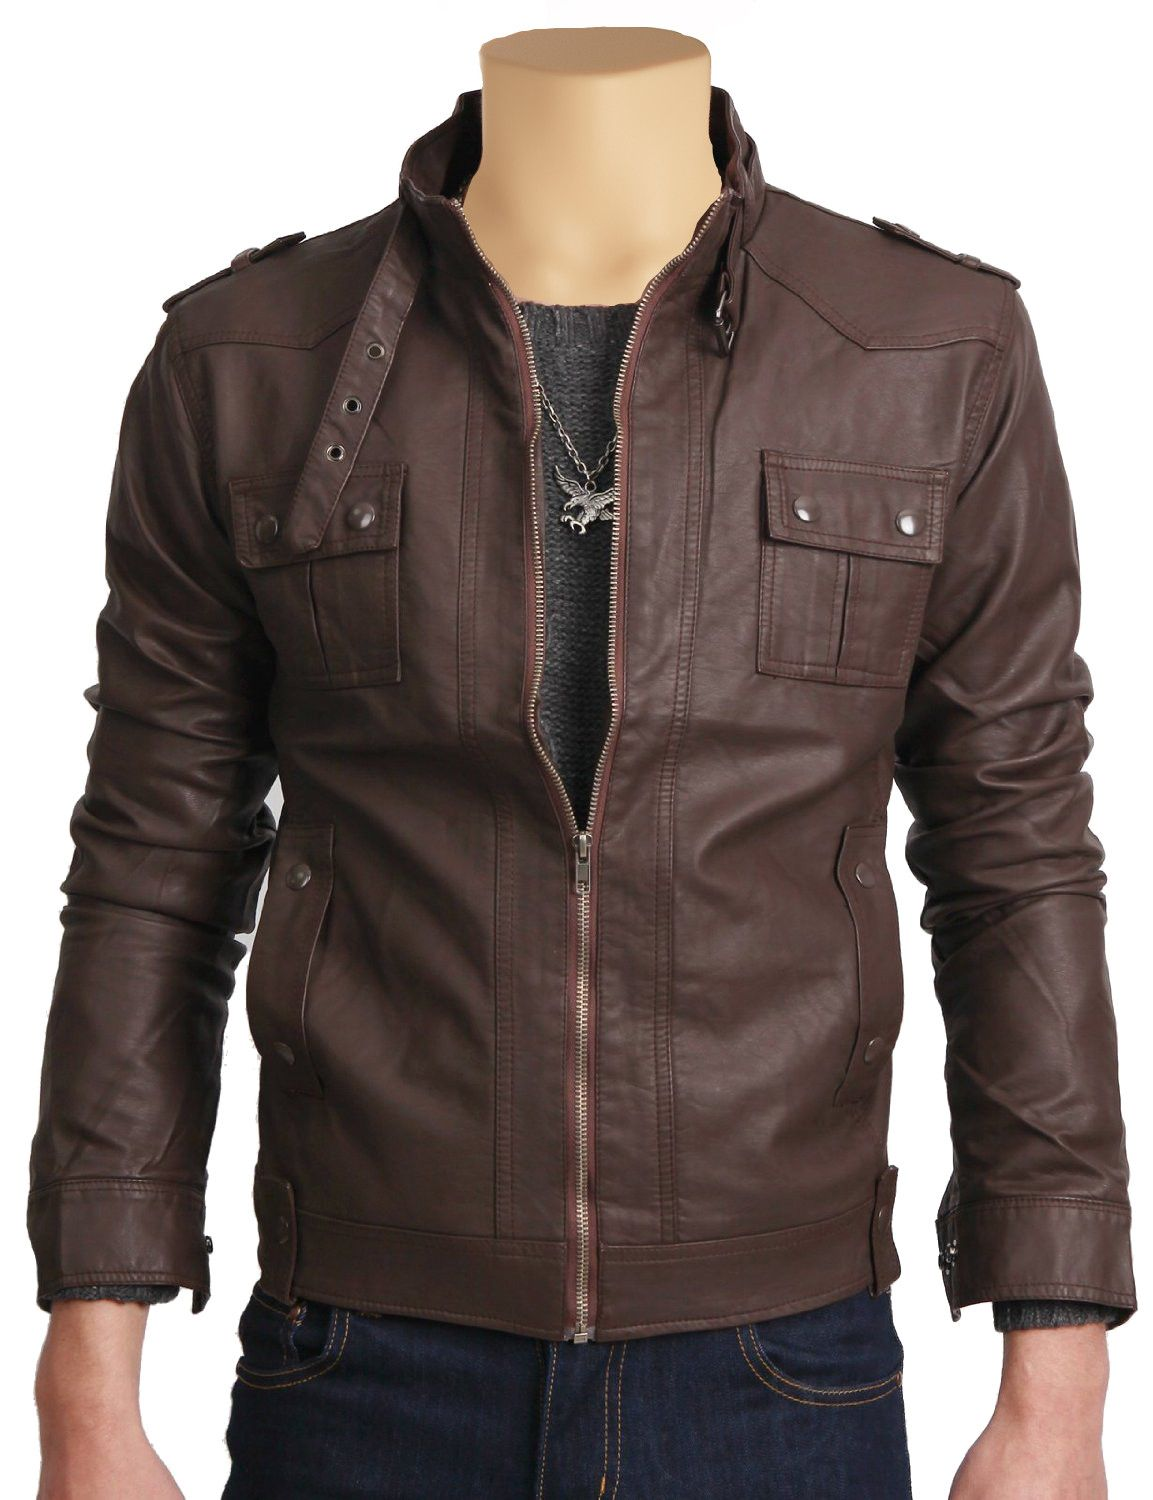 Brown Leather Jacket With Collar Belt Jackets Maker Leather Jacket Men Leather Jackets Online Brown Leather Jacket [ 1500 x 1153 Pixel ]